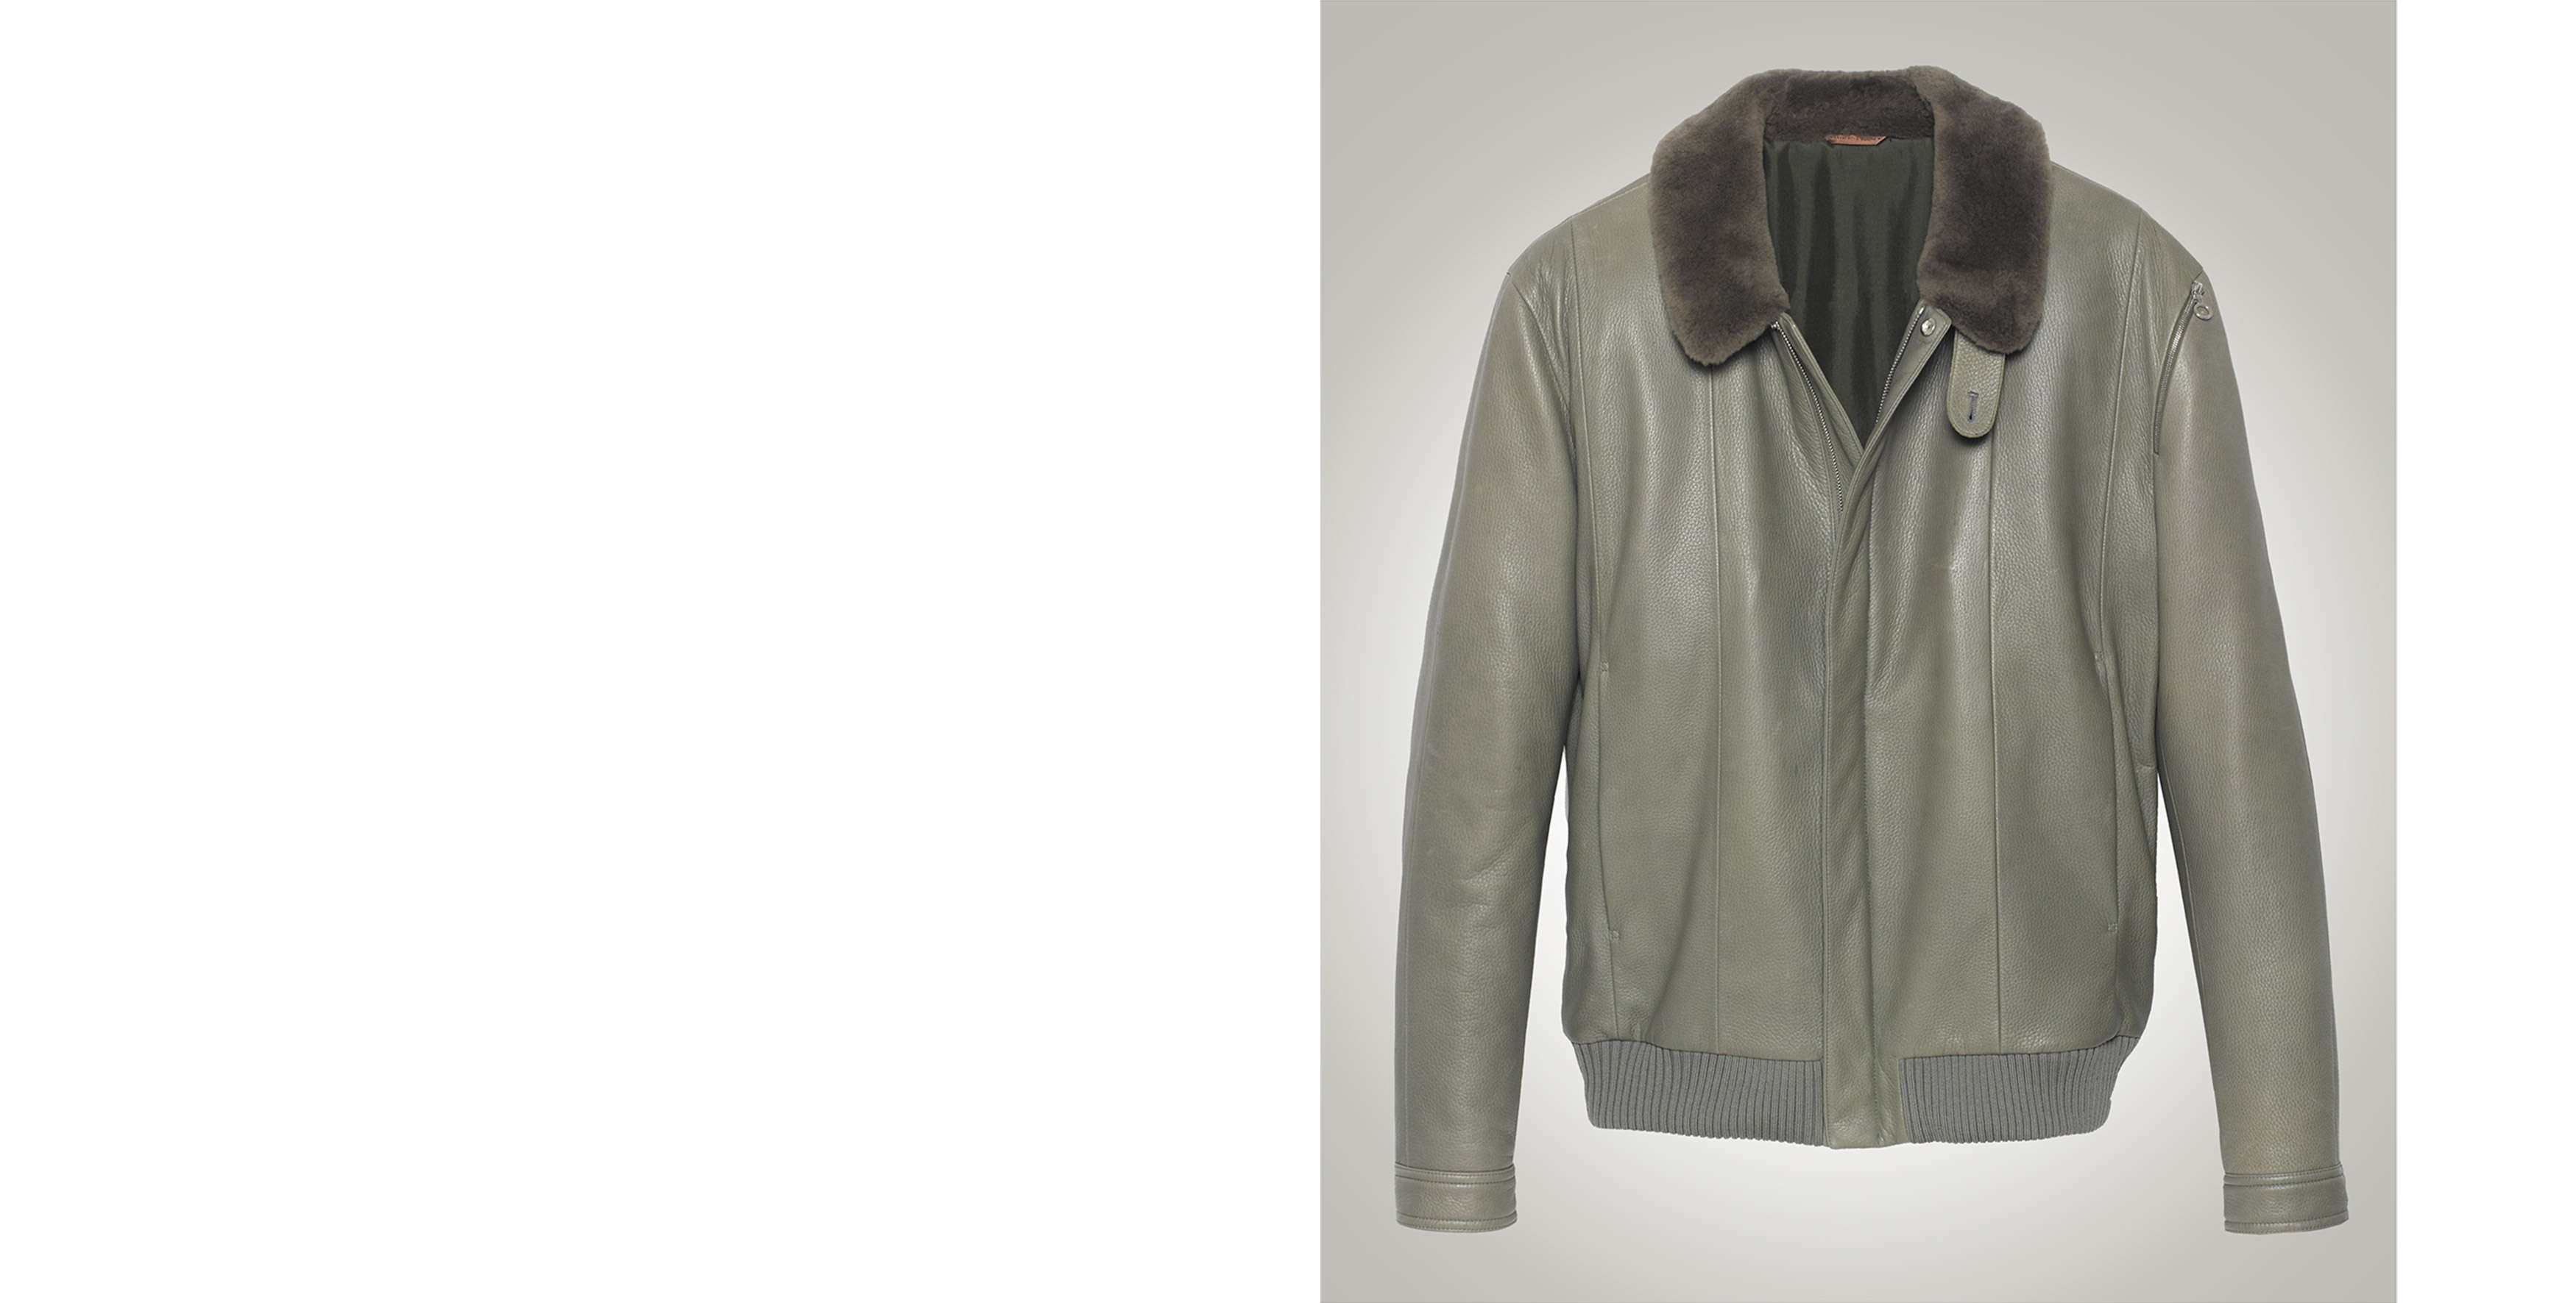 Joss Beaumont jacket in deer leather and nutria fur collar